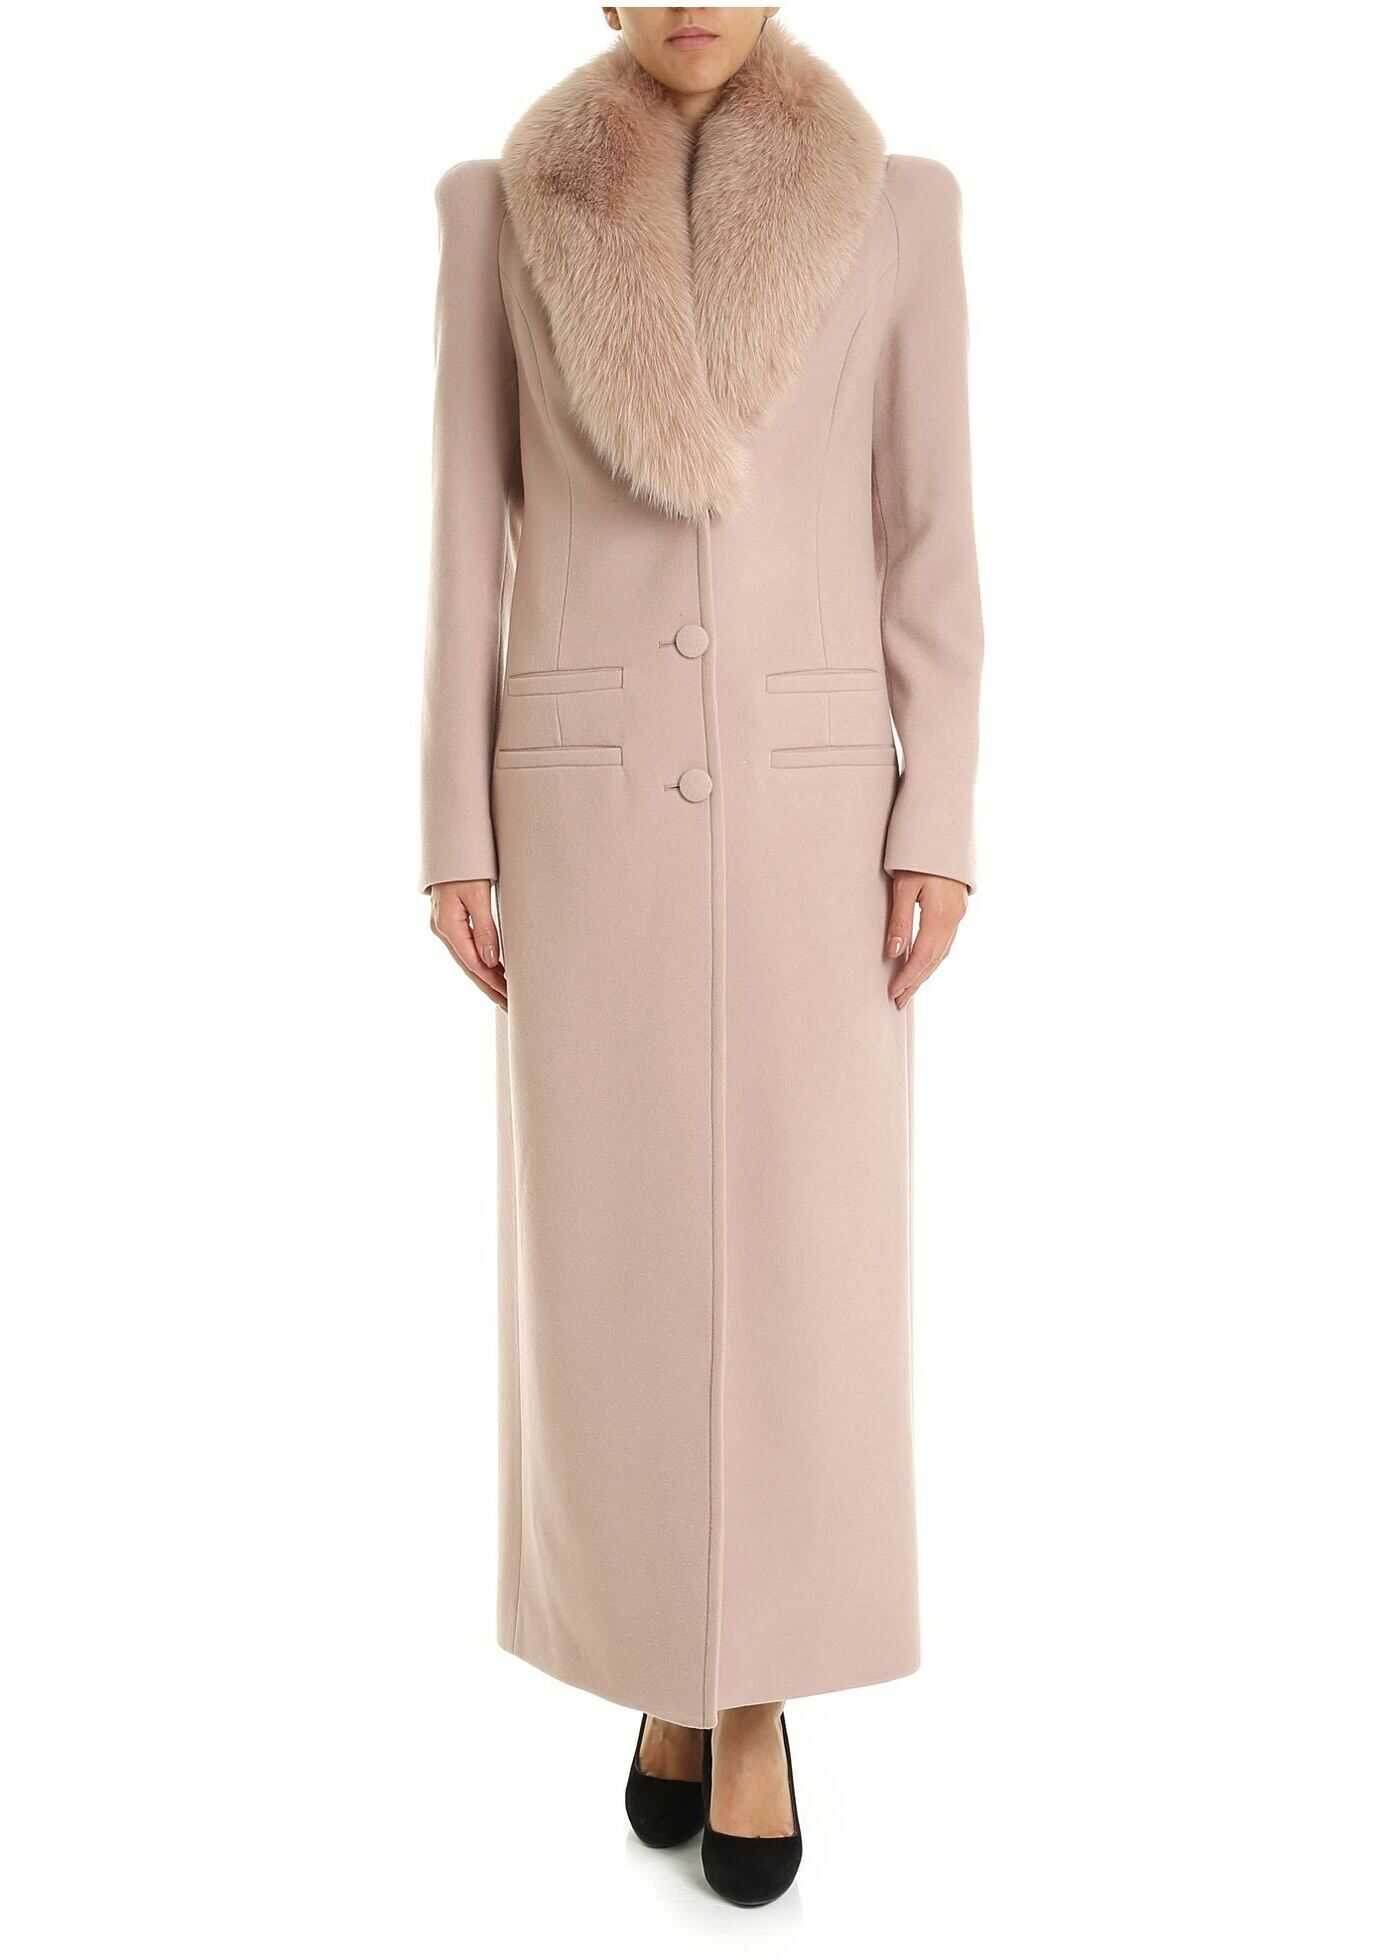 Fur Collar Coat In Pink thumbnail